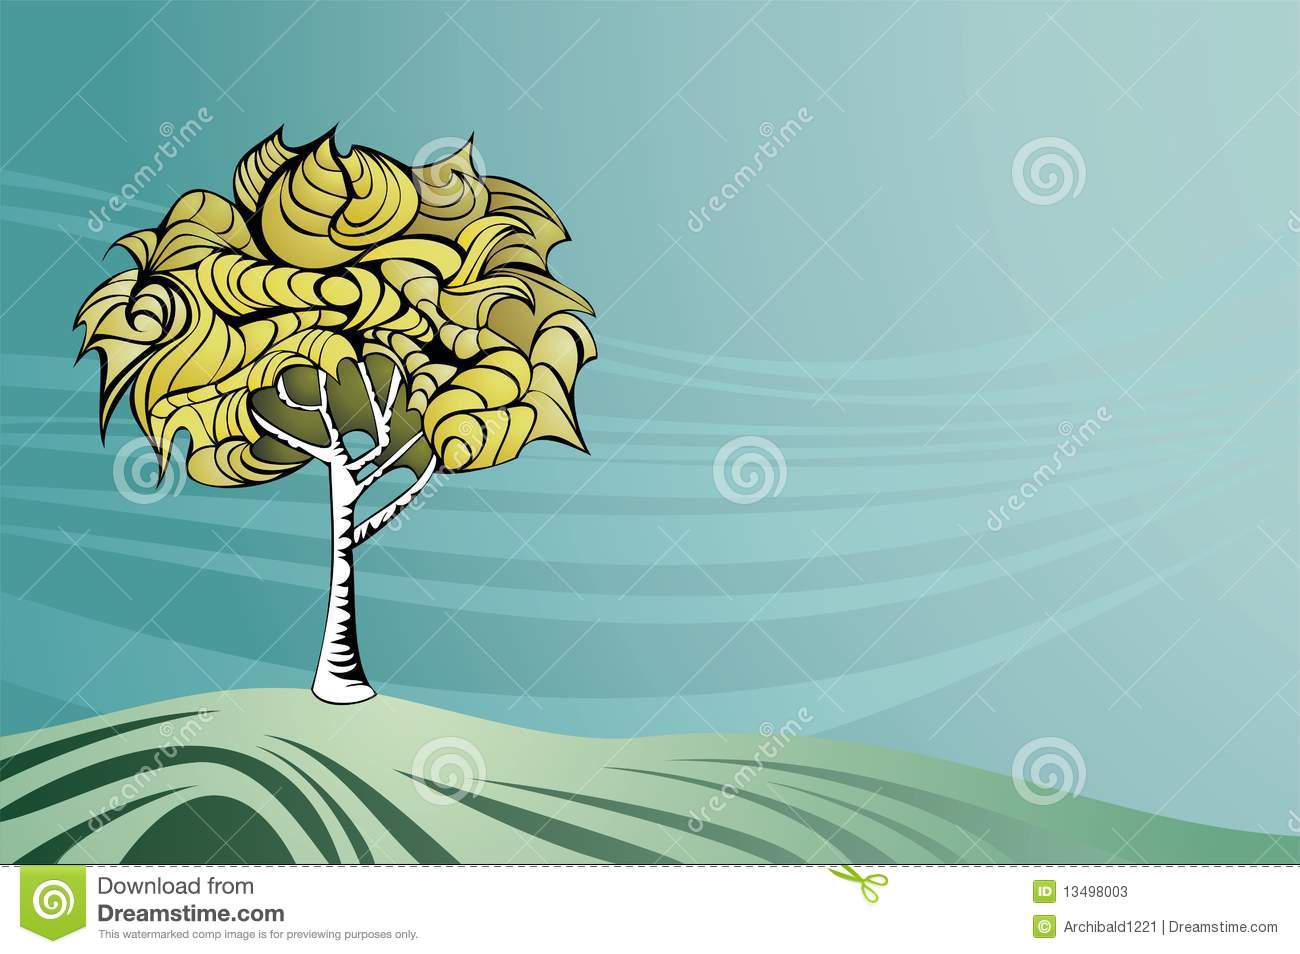 Nature theme background stock vector illustration of for Ideanature